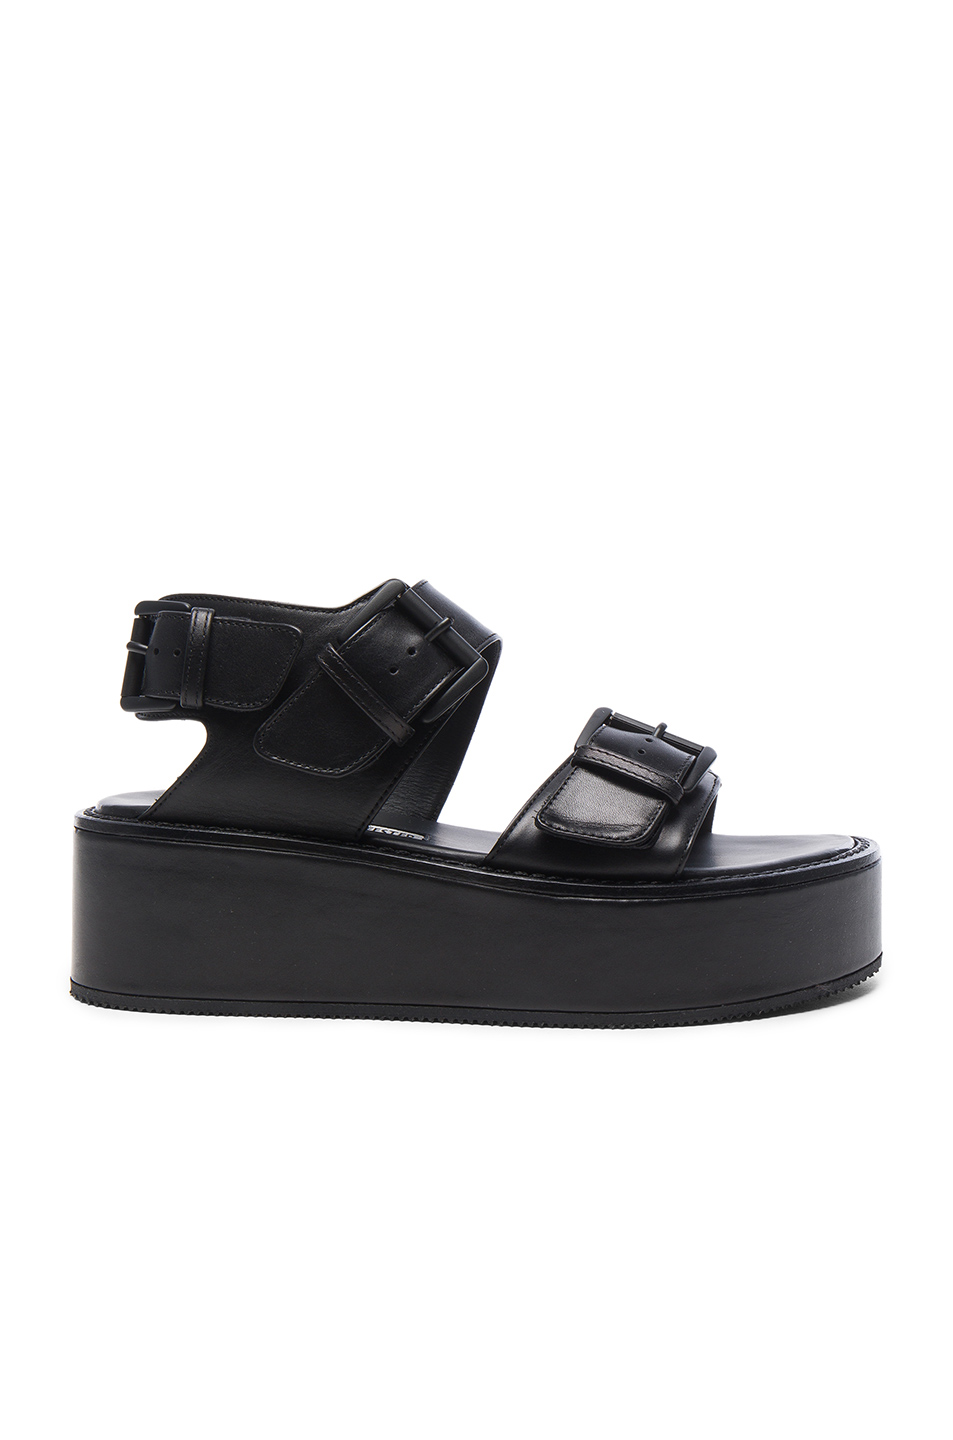 Ann Demeulemeester Leather Platform Sandals in Black